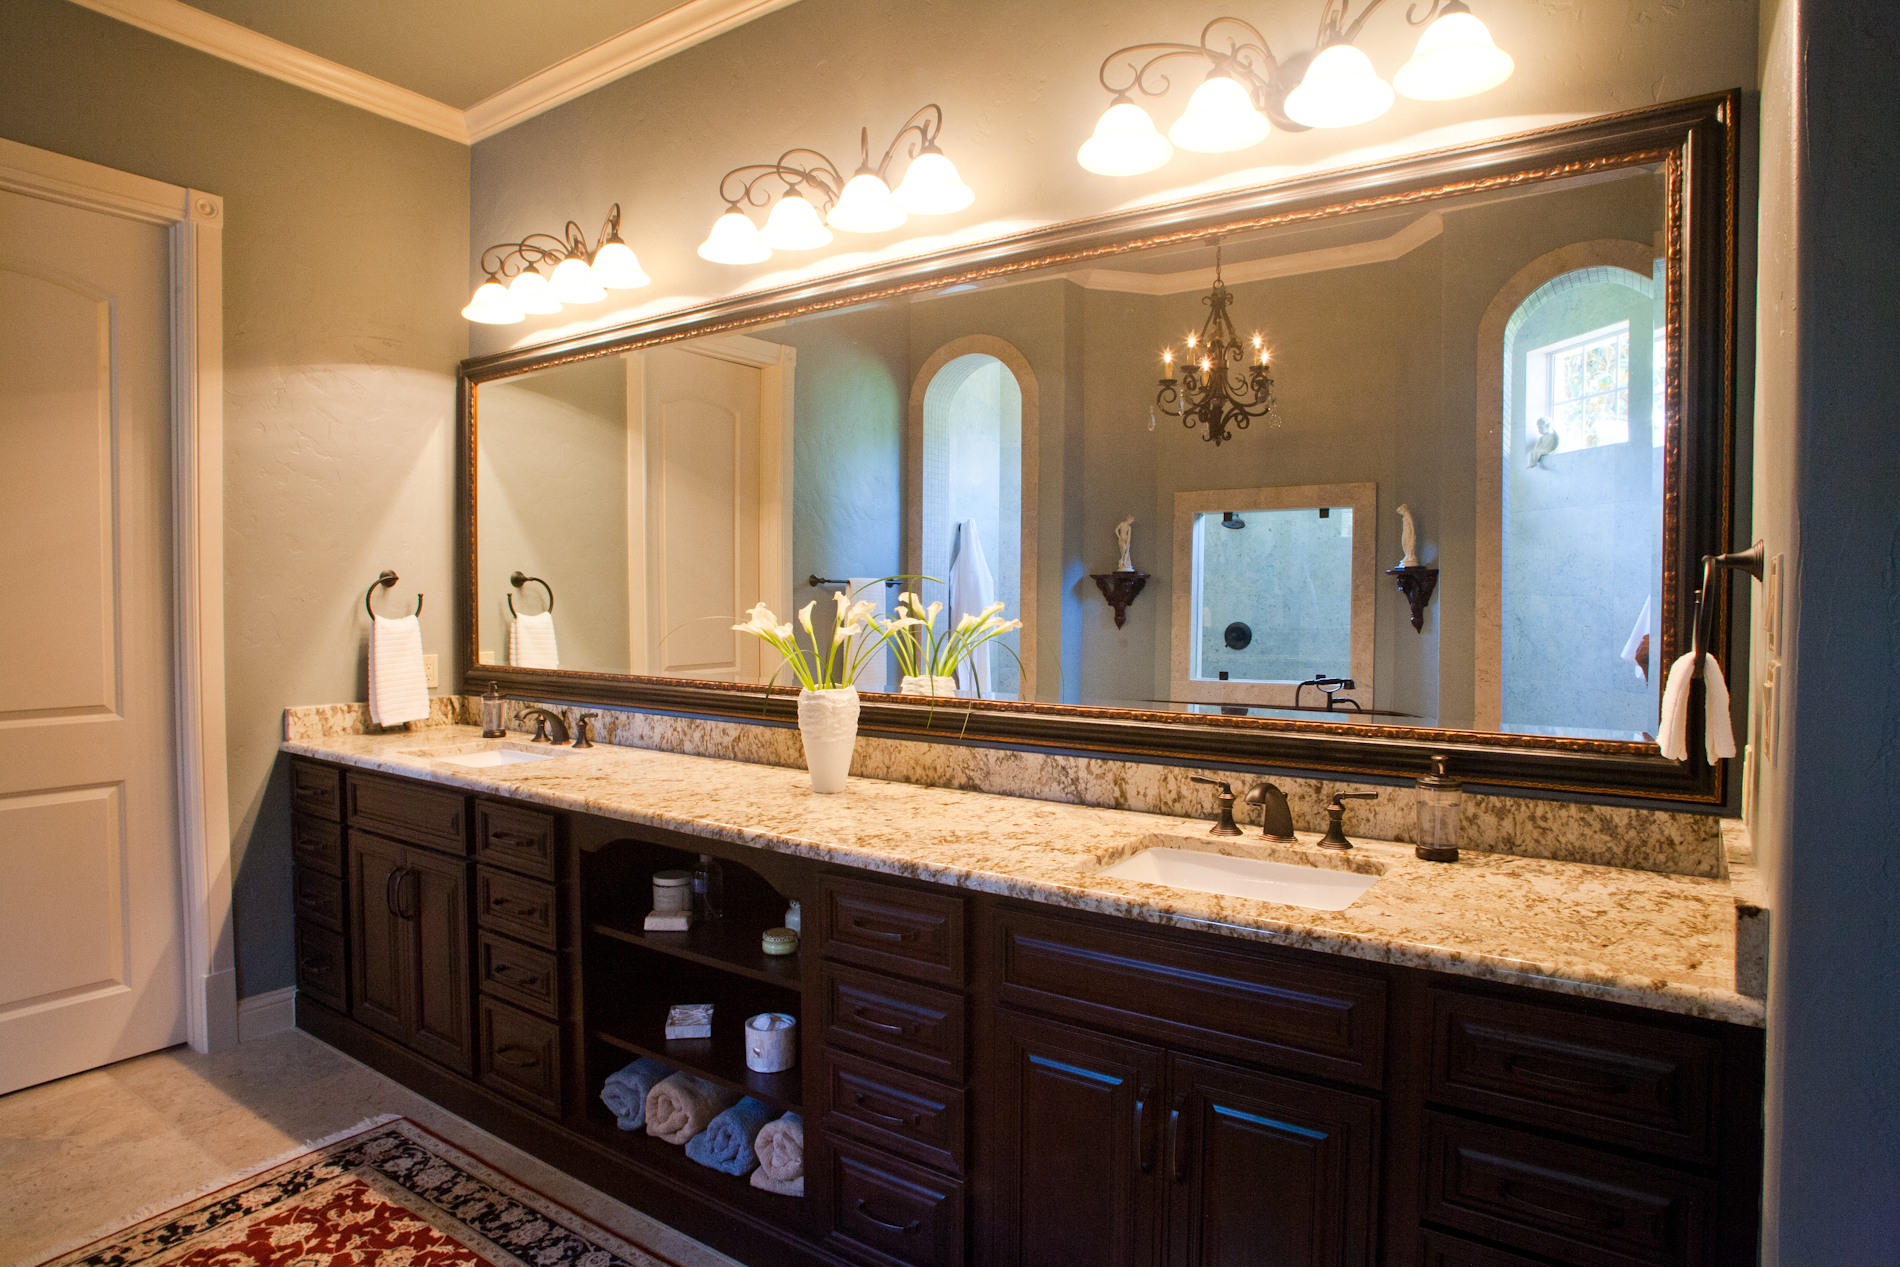 Double vanity bath cabinets with open cubby buy cabinets for Bathroom cabinets online